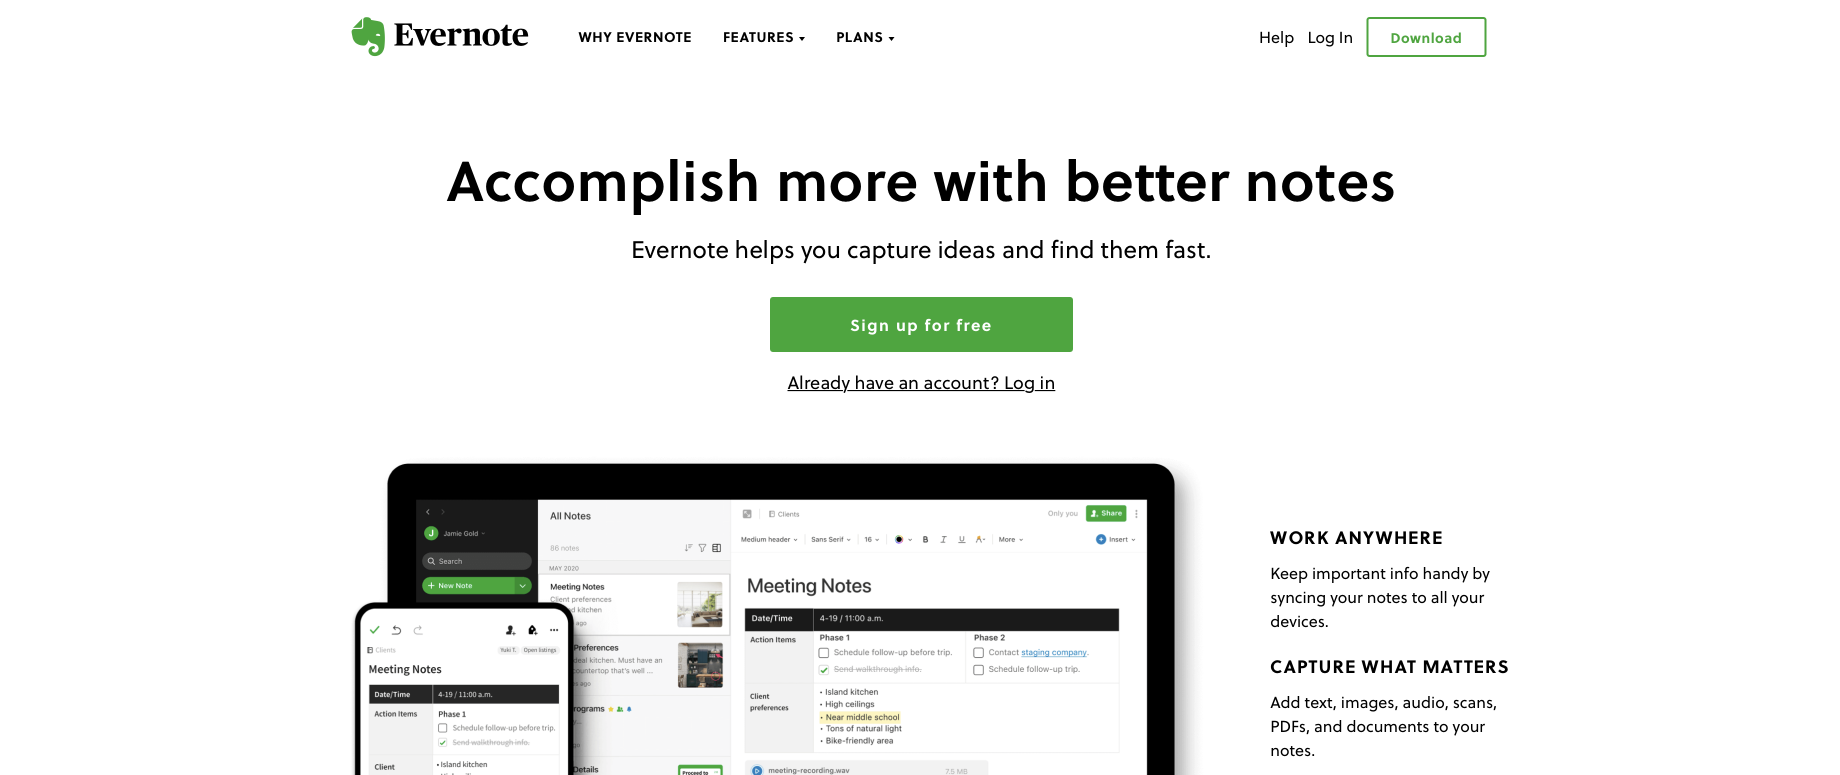 Consulting software: Evernote